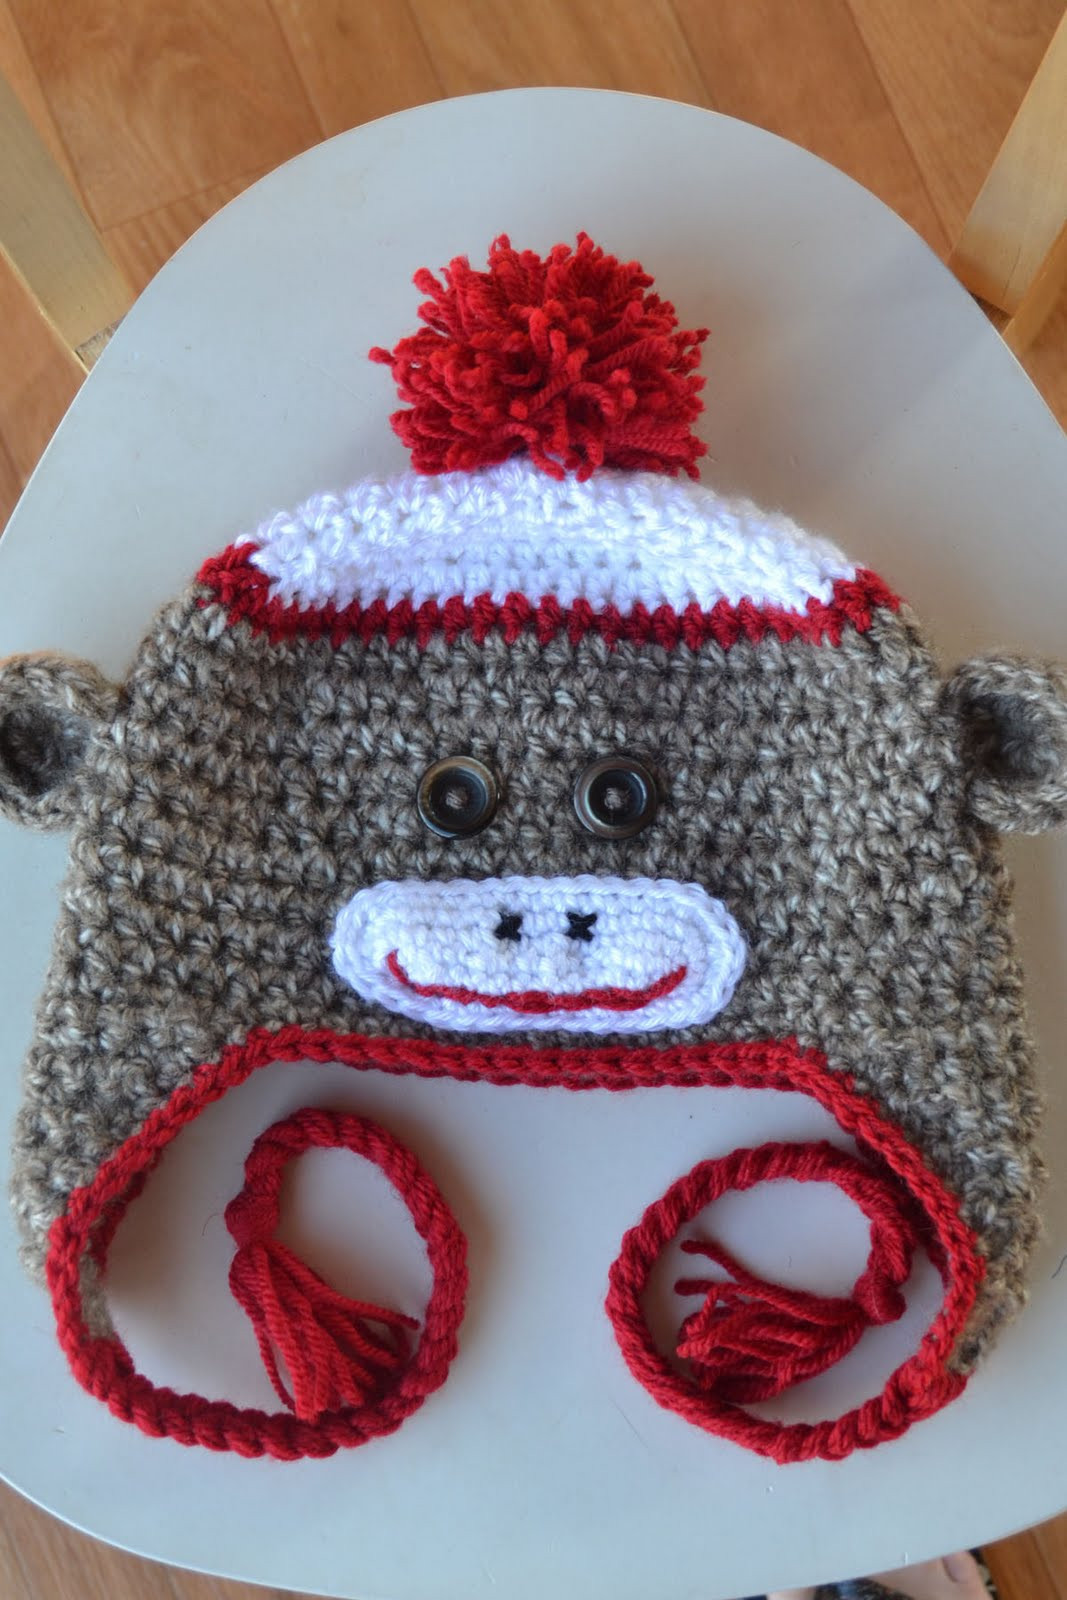 Awesome Crochet In Color Just Another sock Monkey Hat Pattern Free Crochet Monkey Pattern Of Innovative 50 Ideas Free Crochet Monkey Pattern